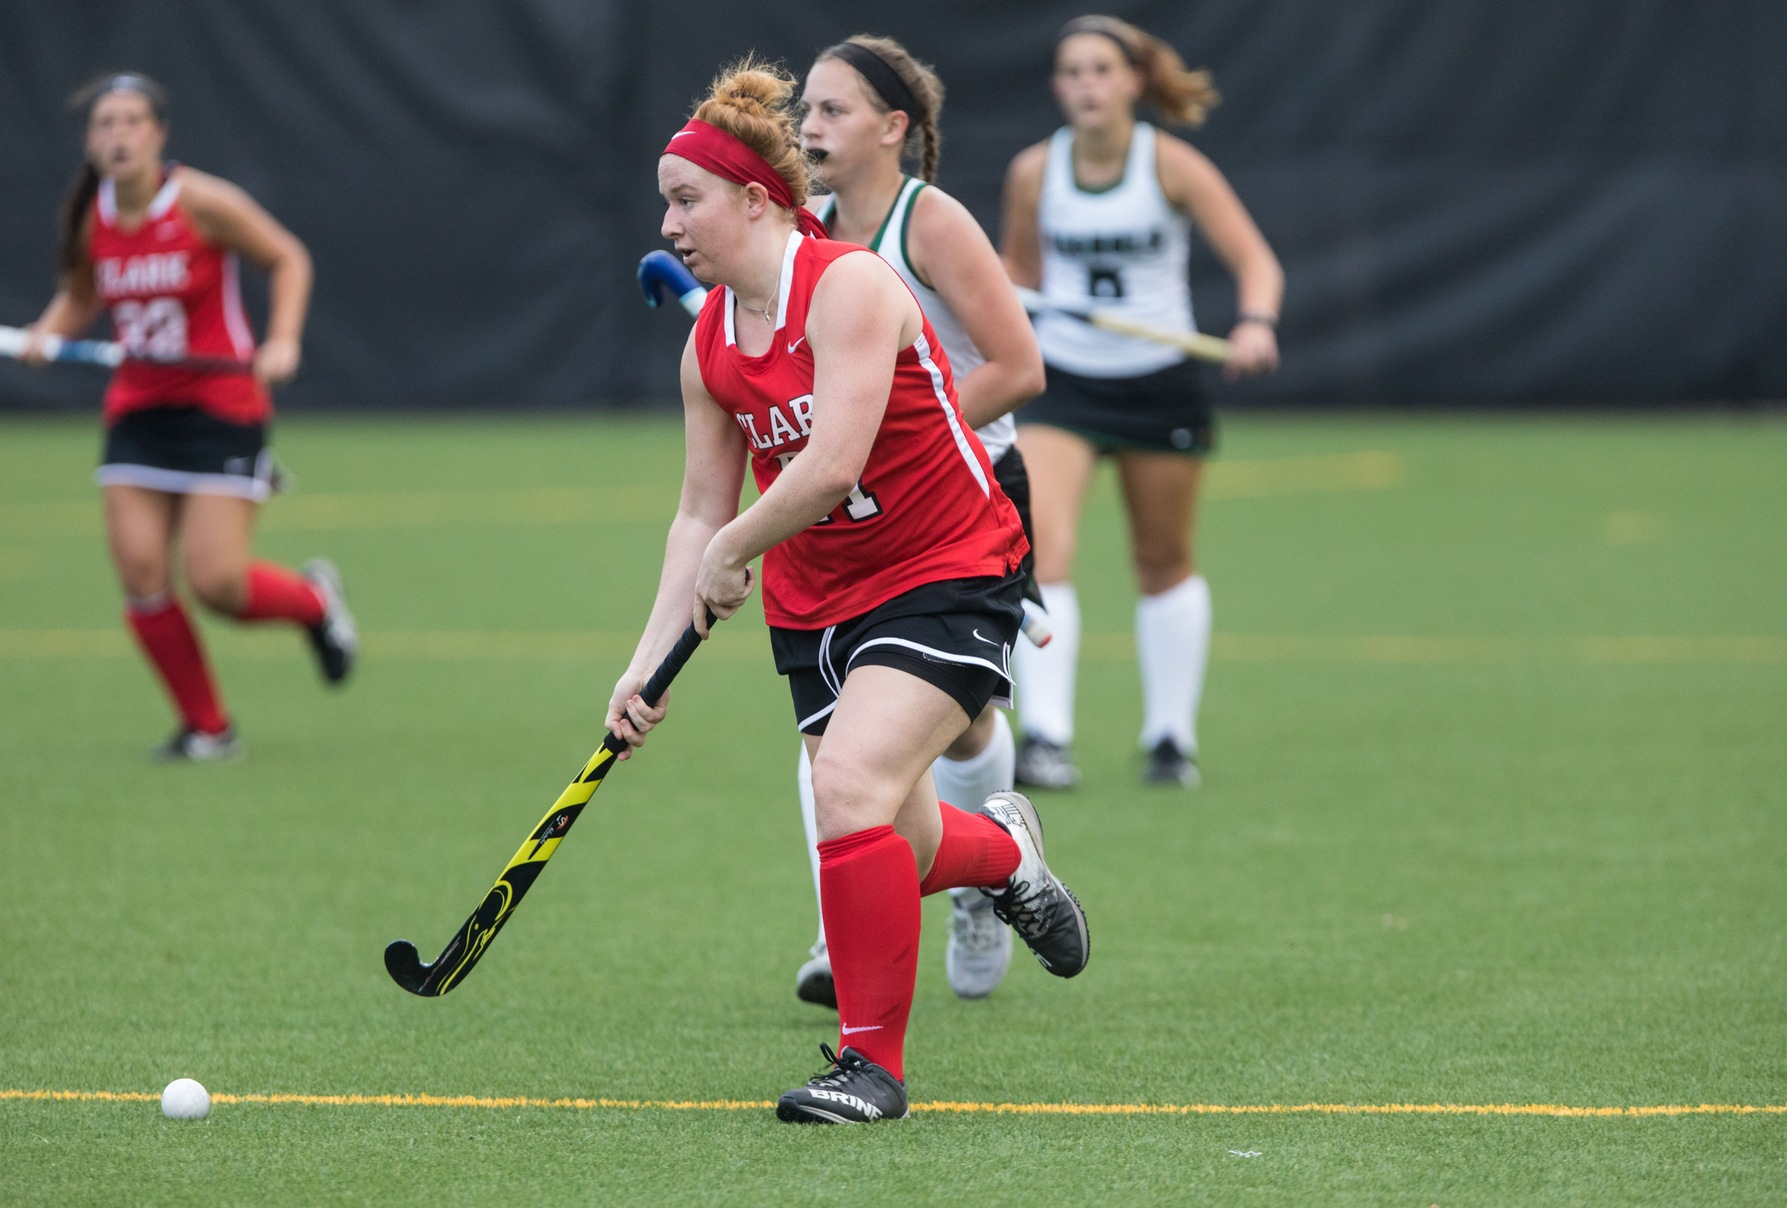 Springfield Edges Field Hockey in NEWMAC Play